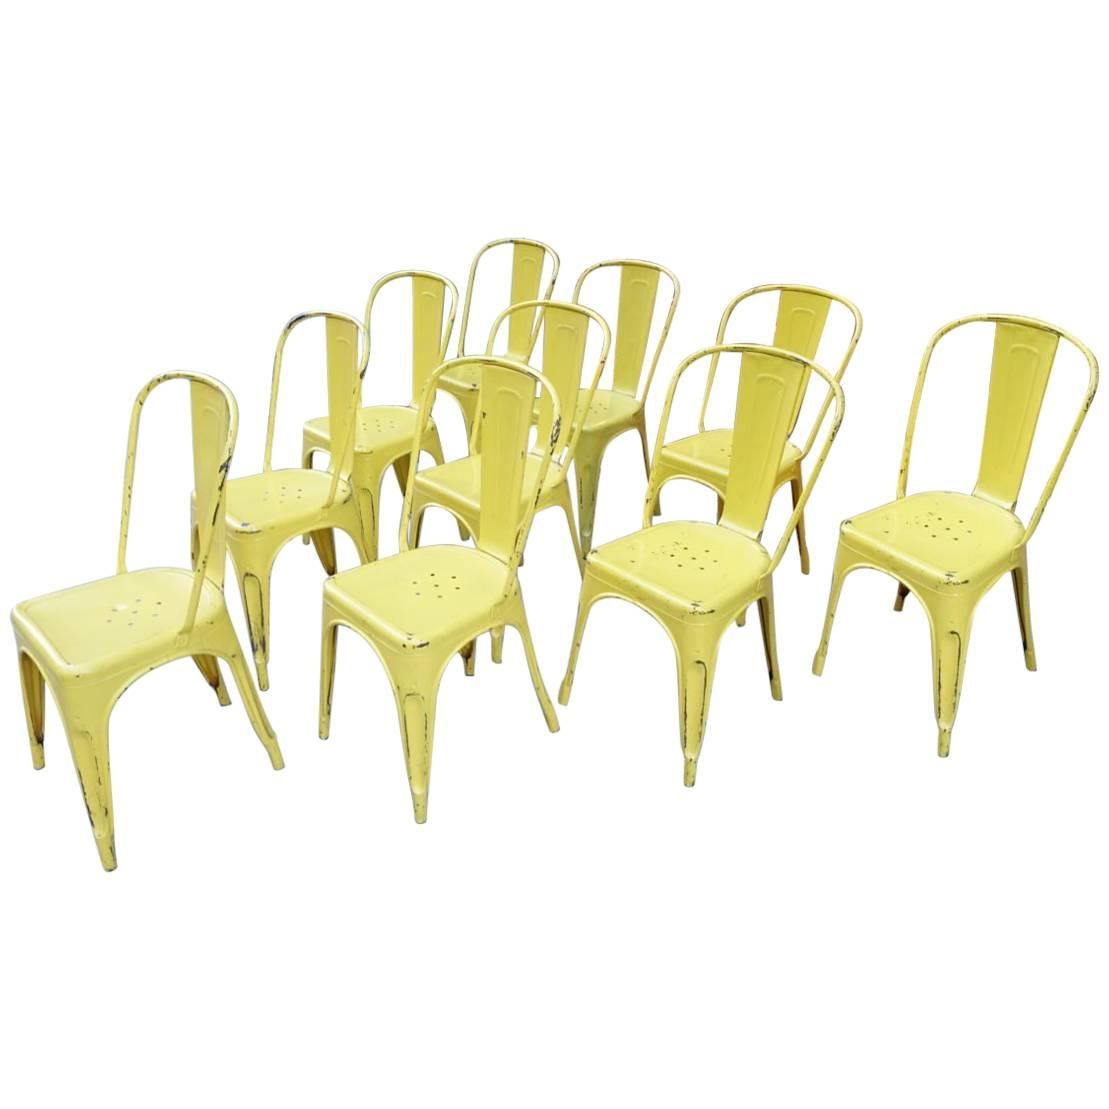 Iconic Tolix Chair In Sunny Yellow U0027Without Armsu0027 ...